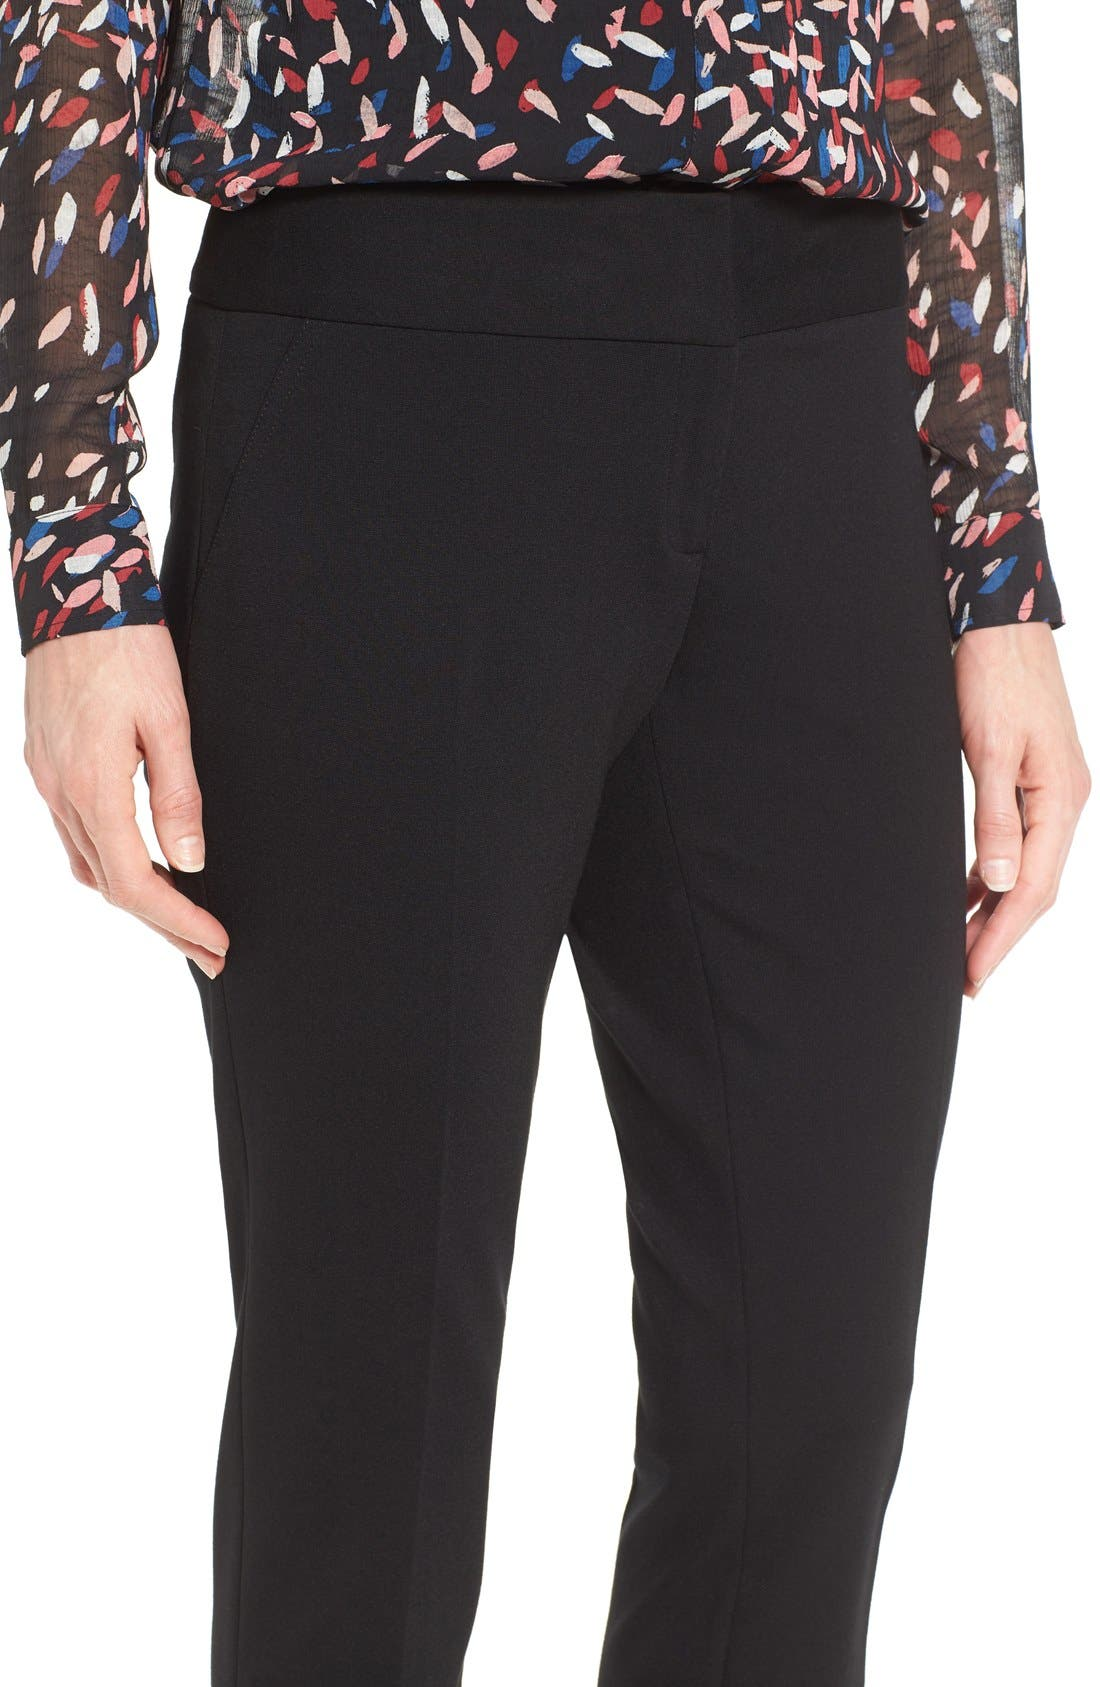 VINCE CAMUTO, Ponte Ankle Pants, Alternate thumbnail 5, color, BLACK